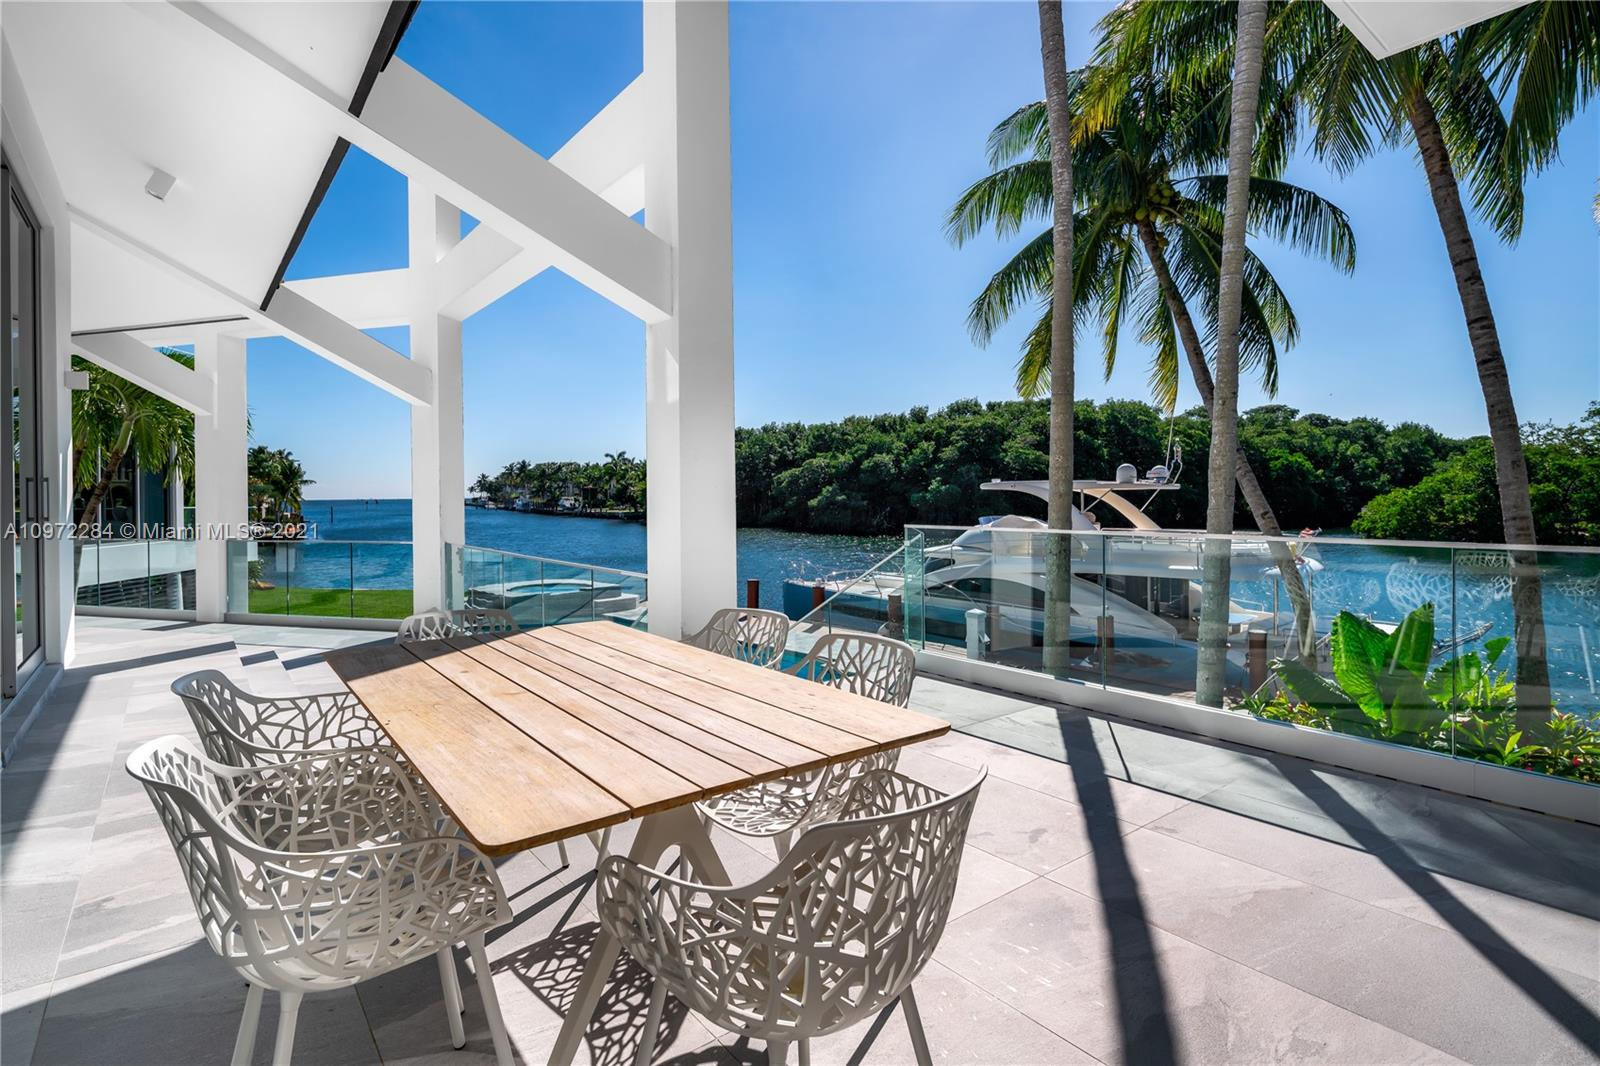 Completely rebuilt with custom chic modern design by Carmen Alcaraz Gomes of CG1 Design. This waterfront home is nestled on a quiet cul-de-sac in the guard-gated community, Sunrise Harbour. Perfectly situated on a SE corner, with 189 ft waterfrontage on Coral Gables Waterway, showcasing unobstructed bay views. New dock and deep water easily accommodate a large yacht. Multiple terraces overlook the pool and spa creating intimate entertaining spaces. Interior features include open floor plan, double height ceiling, custom glass encased wine cellar, 3 car garage and elevator. Master suite features his/hers walk-in closets, private balcony, separate shower and jacuzzi for two. Kitchen with Miele appliances, chef's island, and breakfast nook. Close to parks, shops, eateries, and A+ schools.